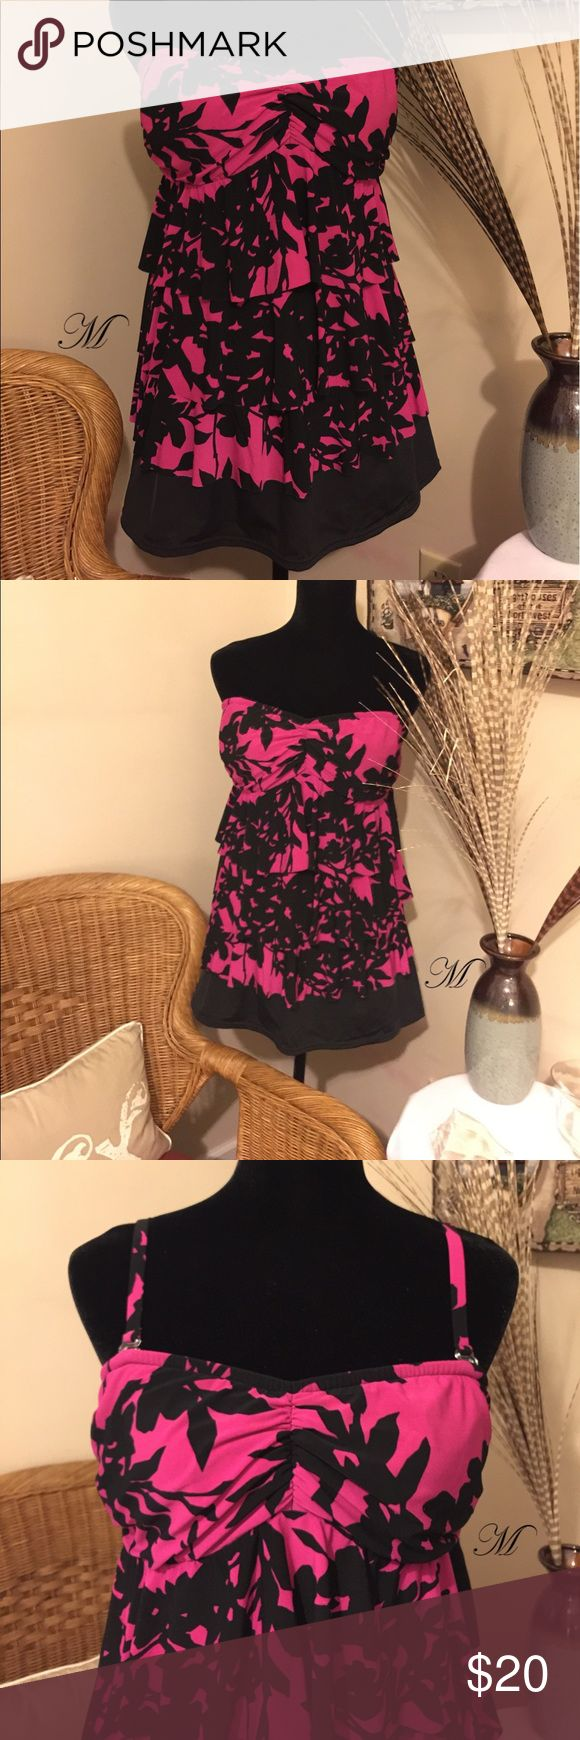 Knockout Pink Tankini This pink tankini looks great on any body type. The color is a knockout shade of pink. I received compliments every time I've worn it. It's still in great condition and has a few seasons left. It comes with removable straps. Aqua Green Swim Bikinis